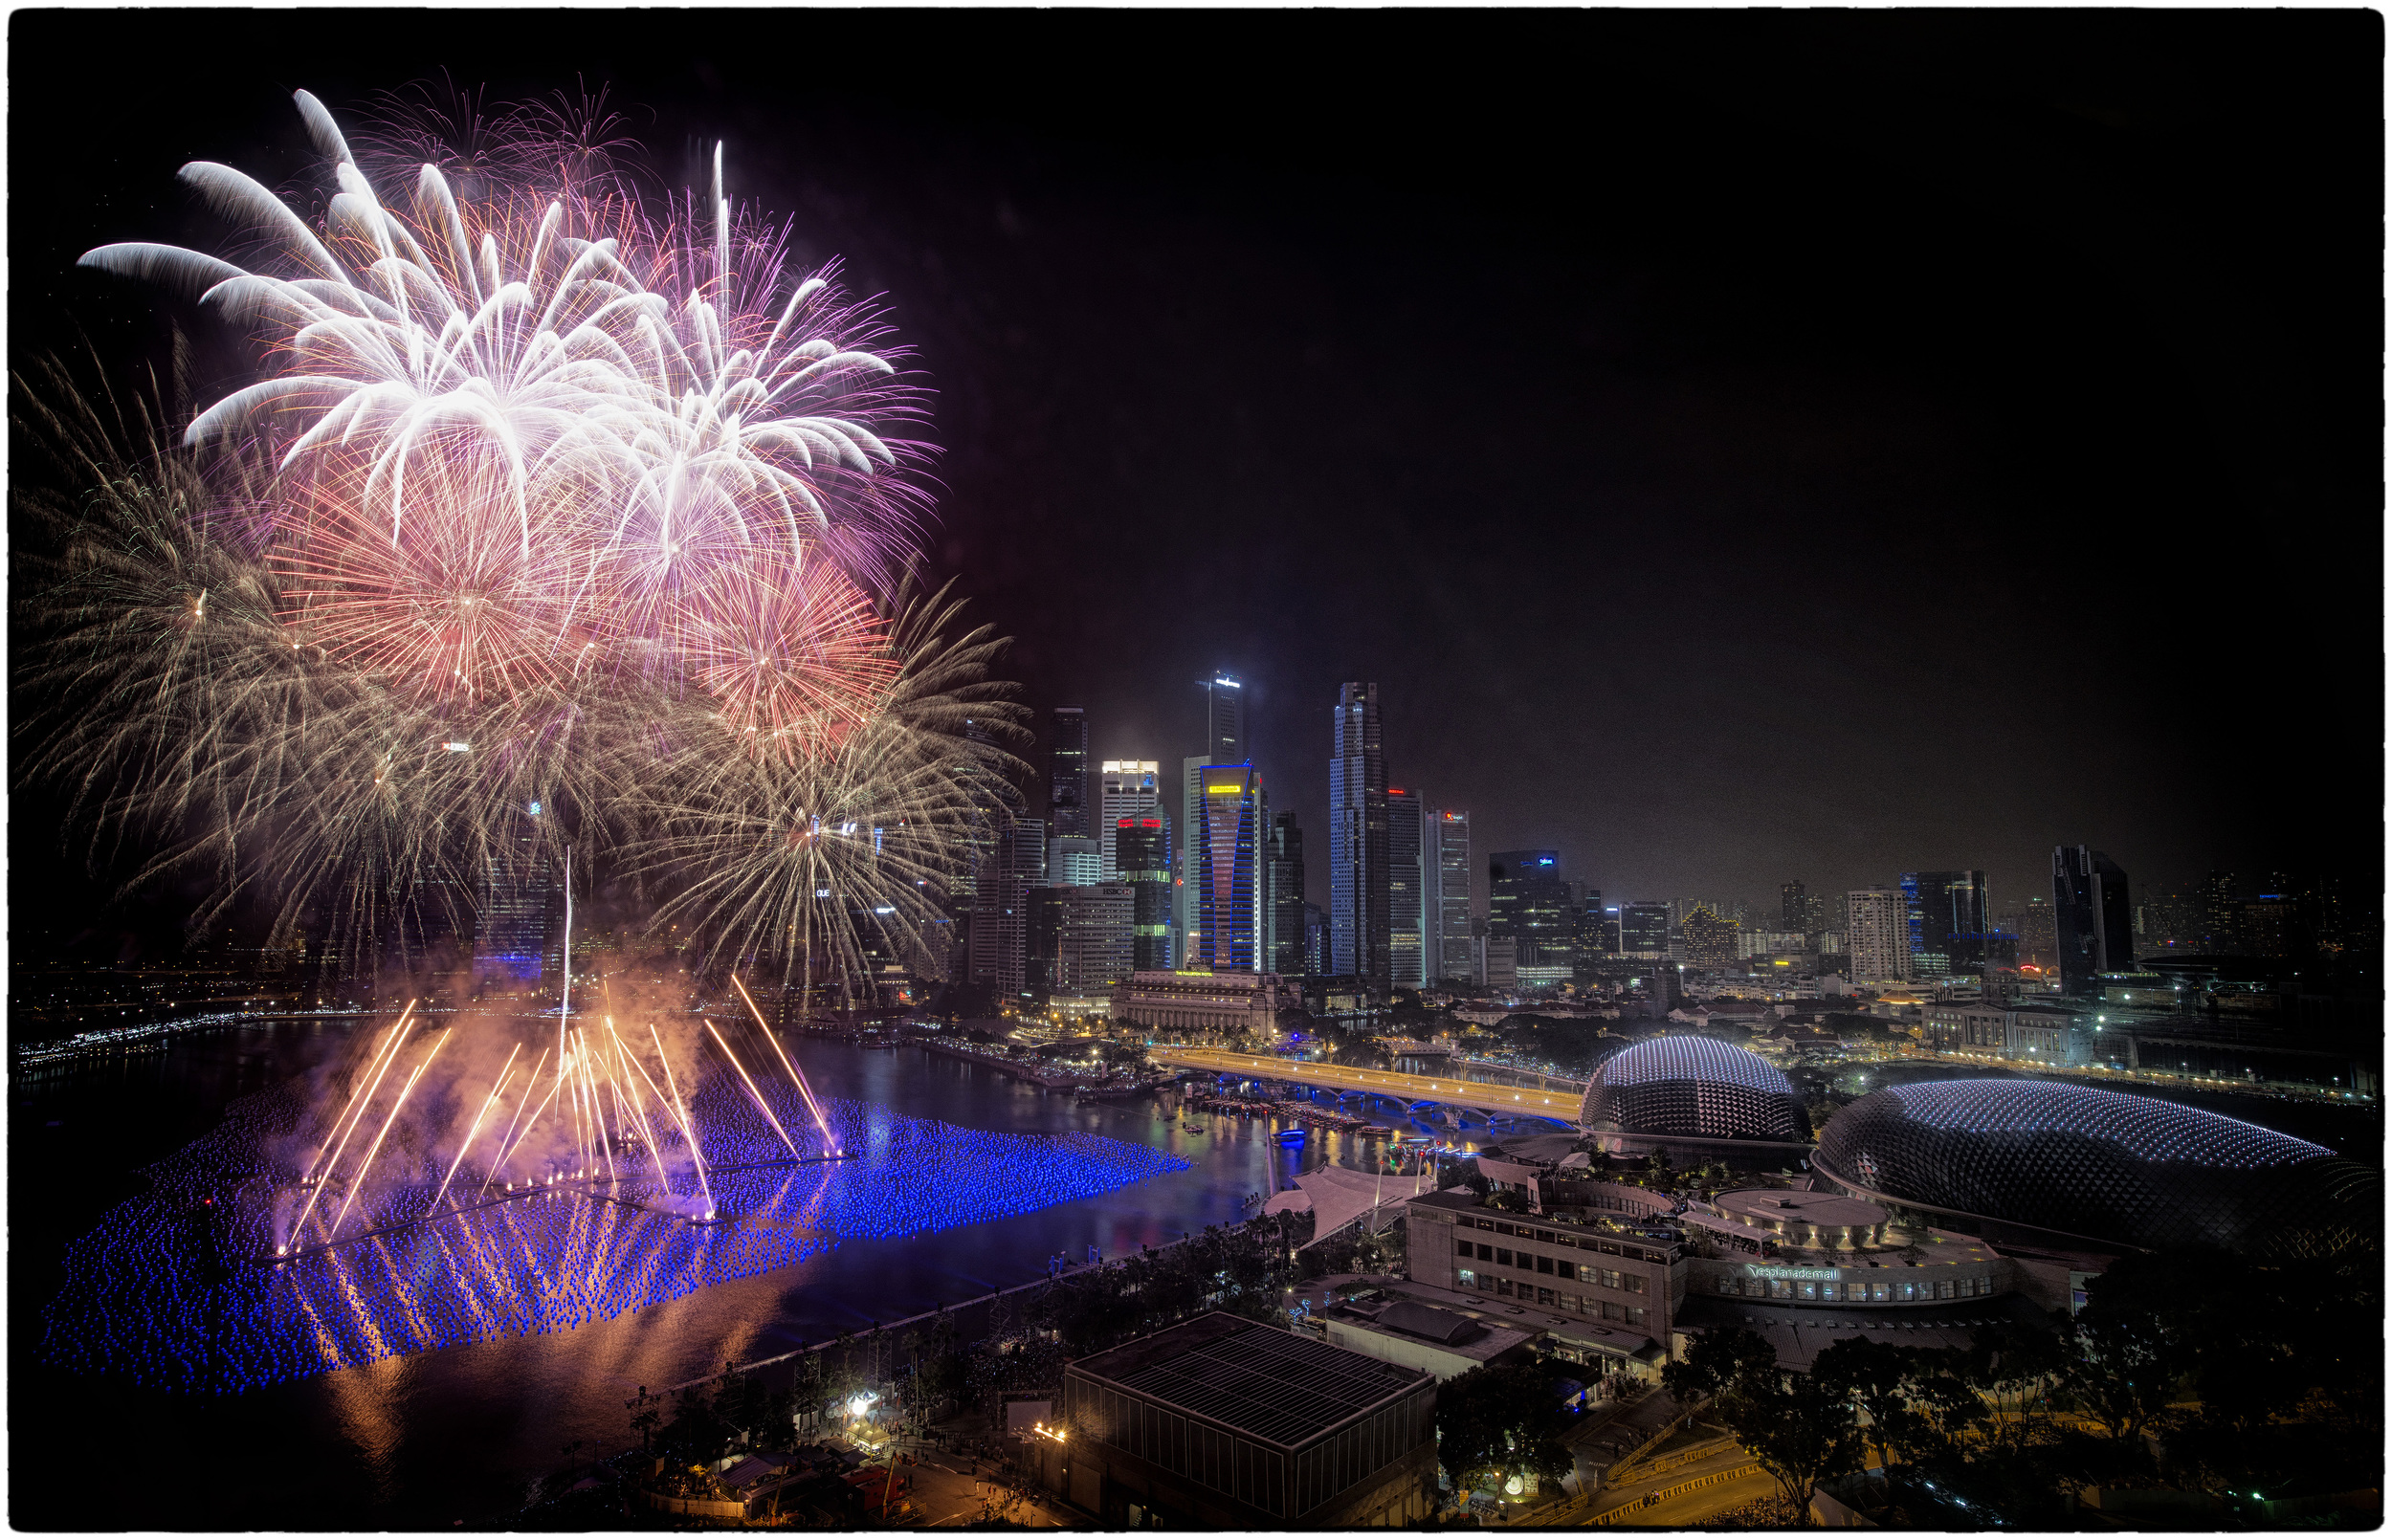 Fireworks light up the Singapore skyline as the country ushers in 2014